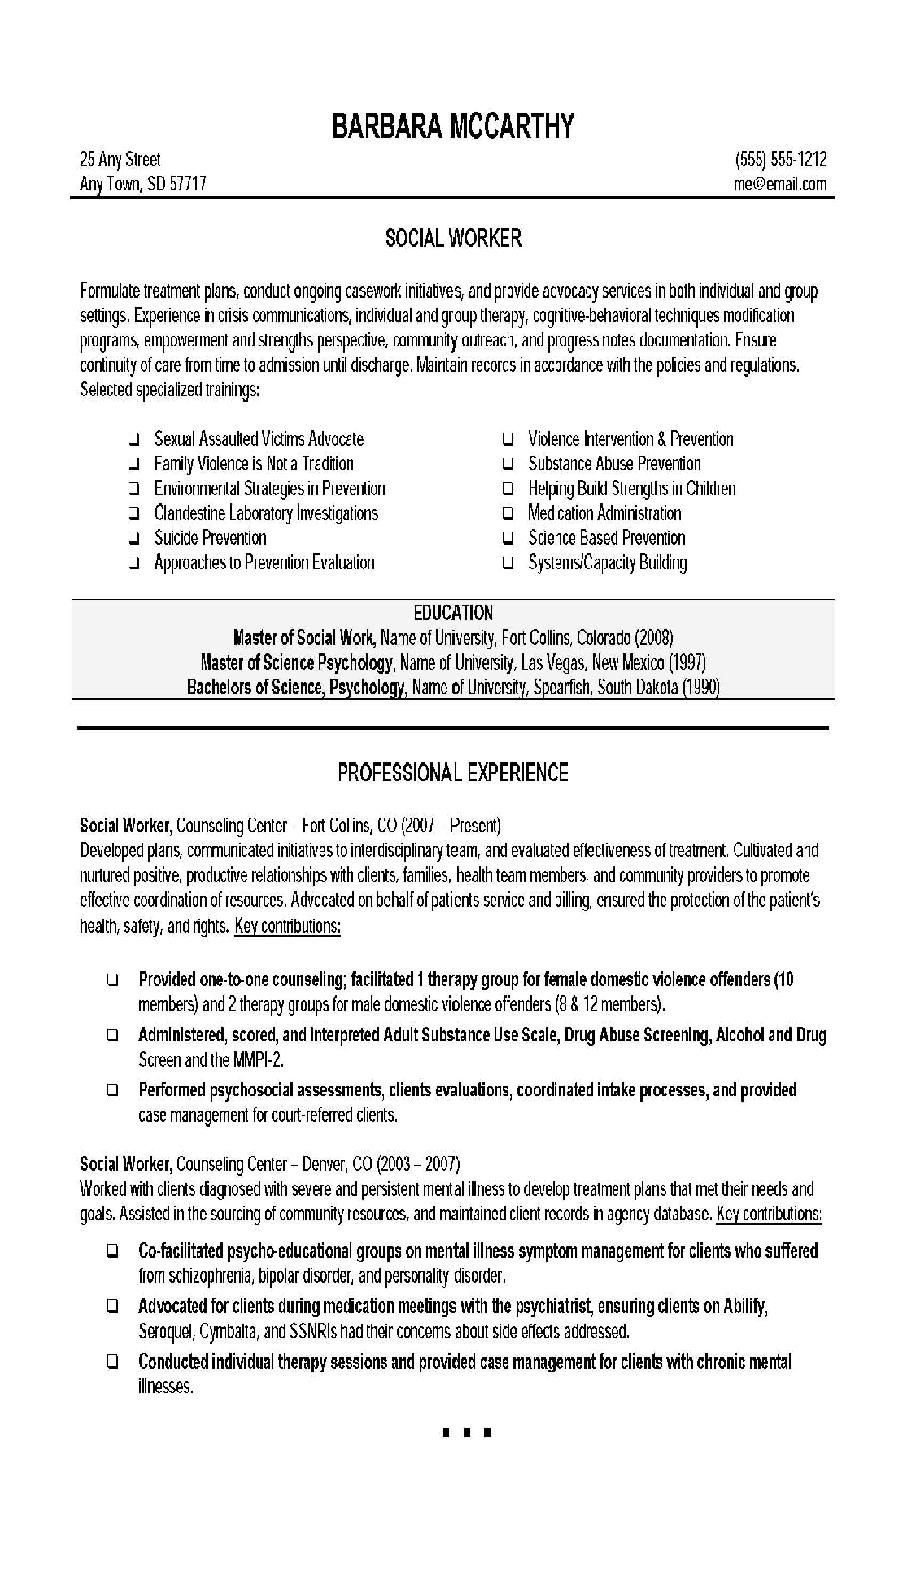 Social Worker Resume 4  Medical Social Worker Resume